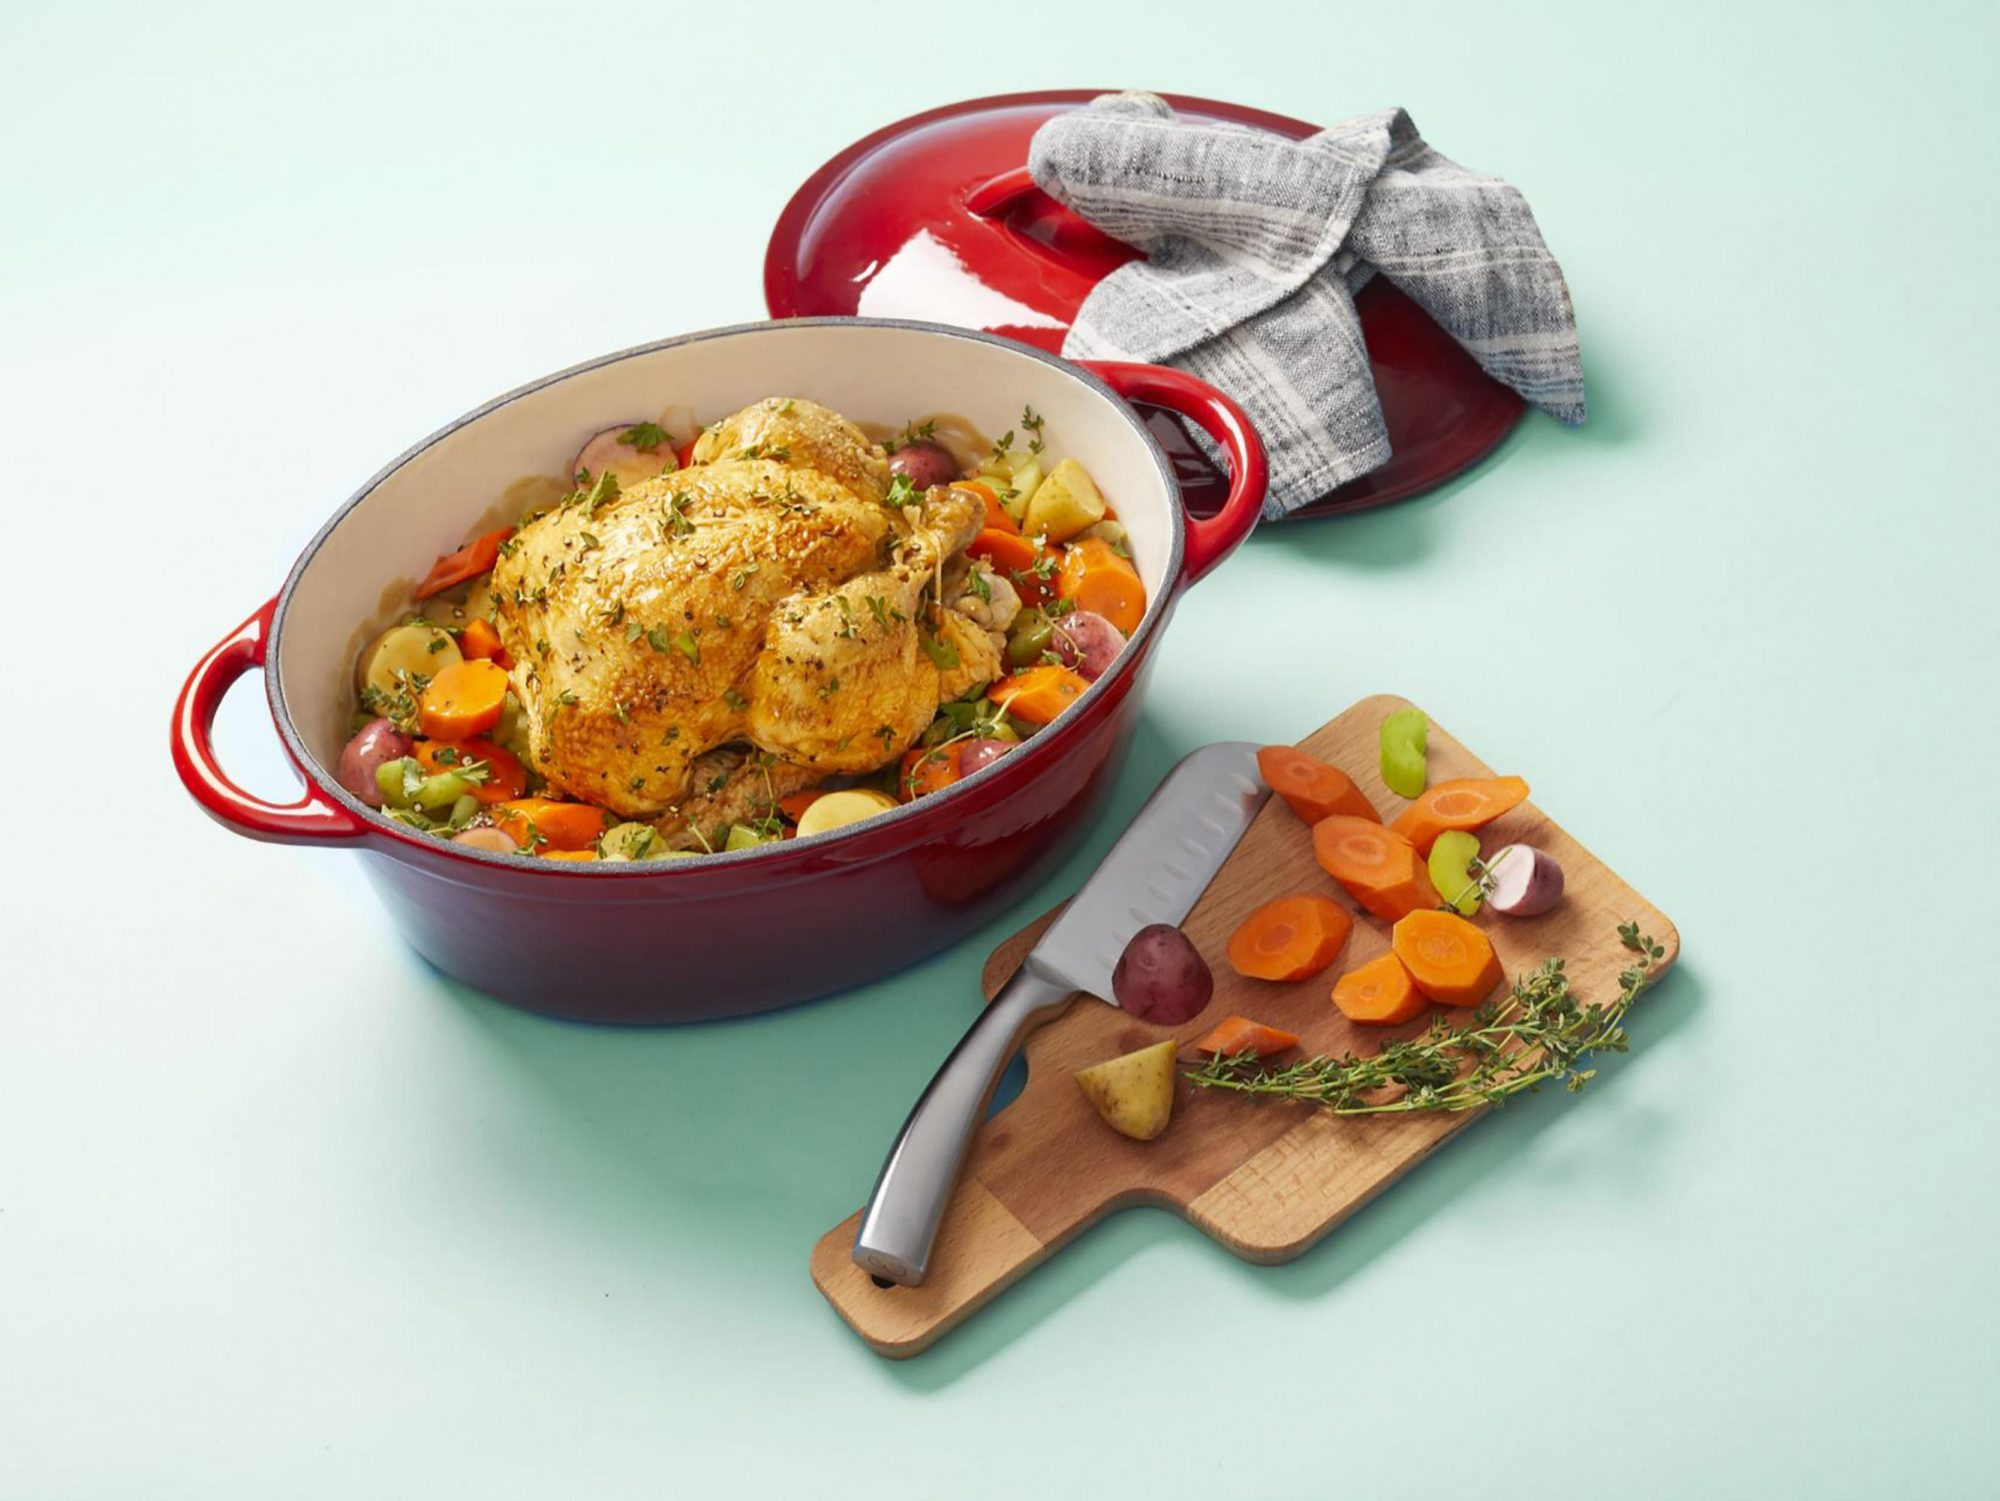 Lidl Is Selling a $20 Dutch Oven—But Not for Long 1810w-Lidl-Dutch-Oven-Chicken